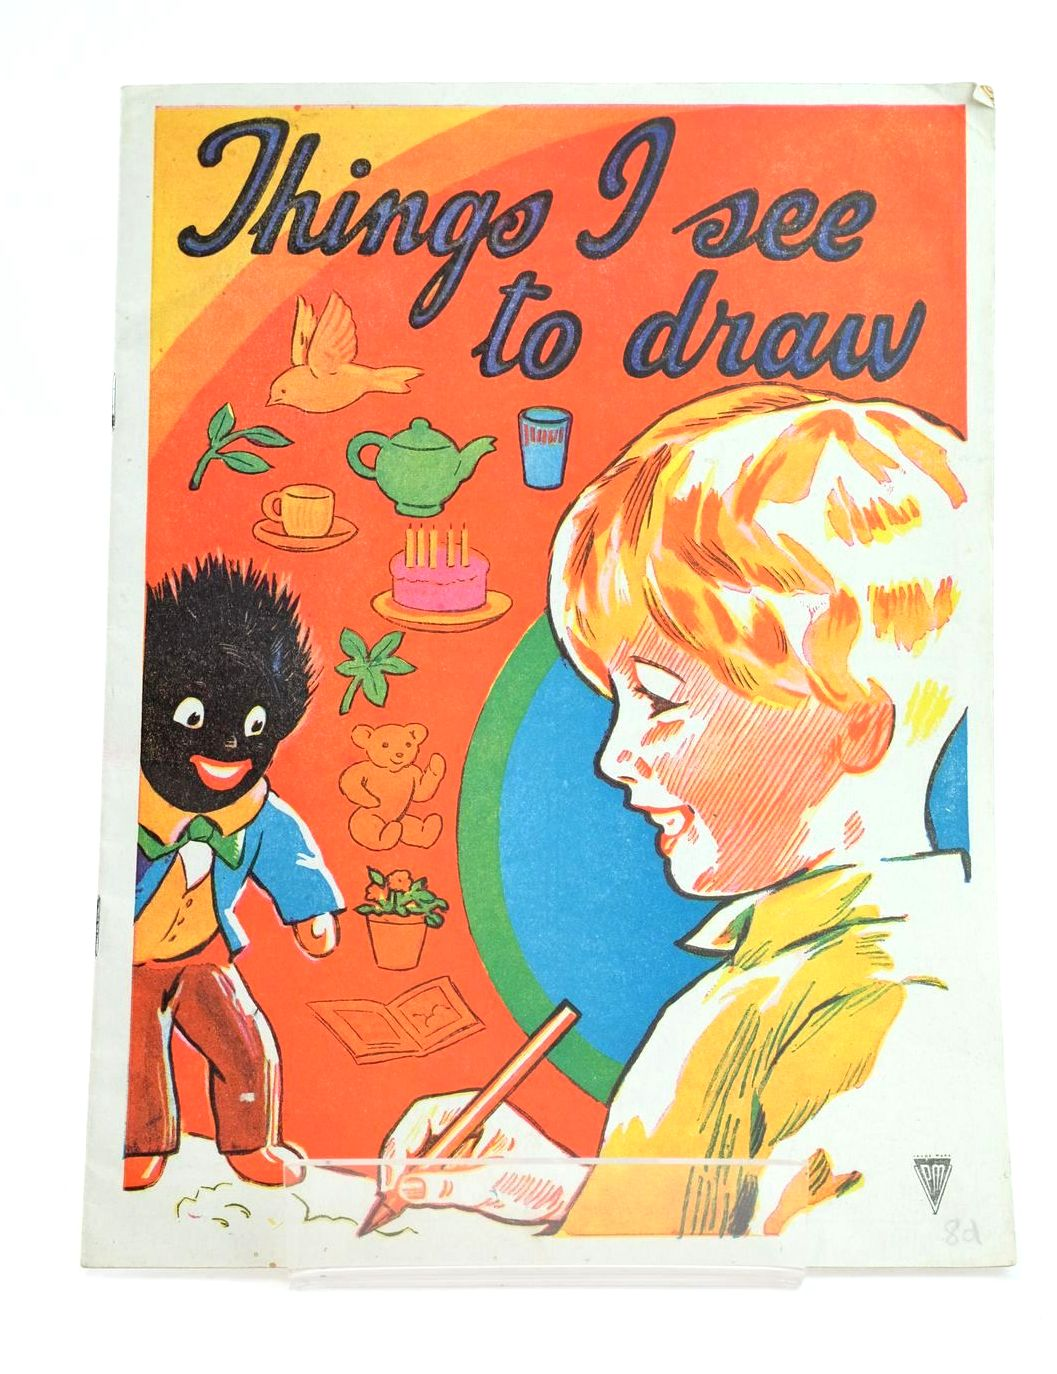 Photo of THINGS I SEE TO DRAW published by P.M. (Productions) Ltd. (STOCK CODE: 1318562)  for sale by Stella & Rose's Books